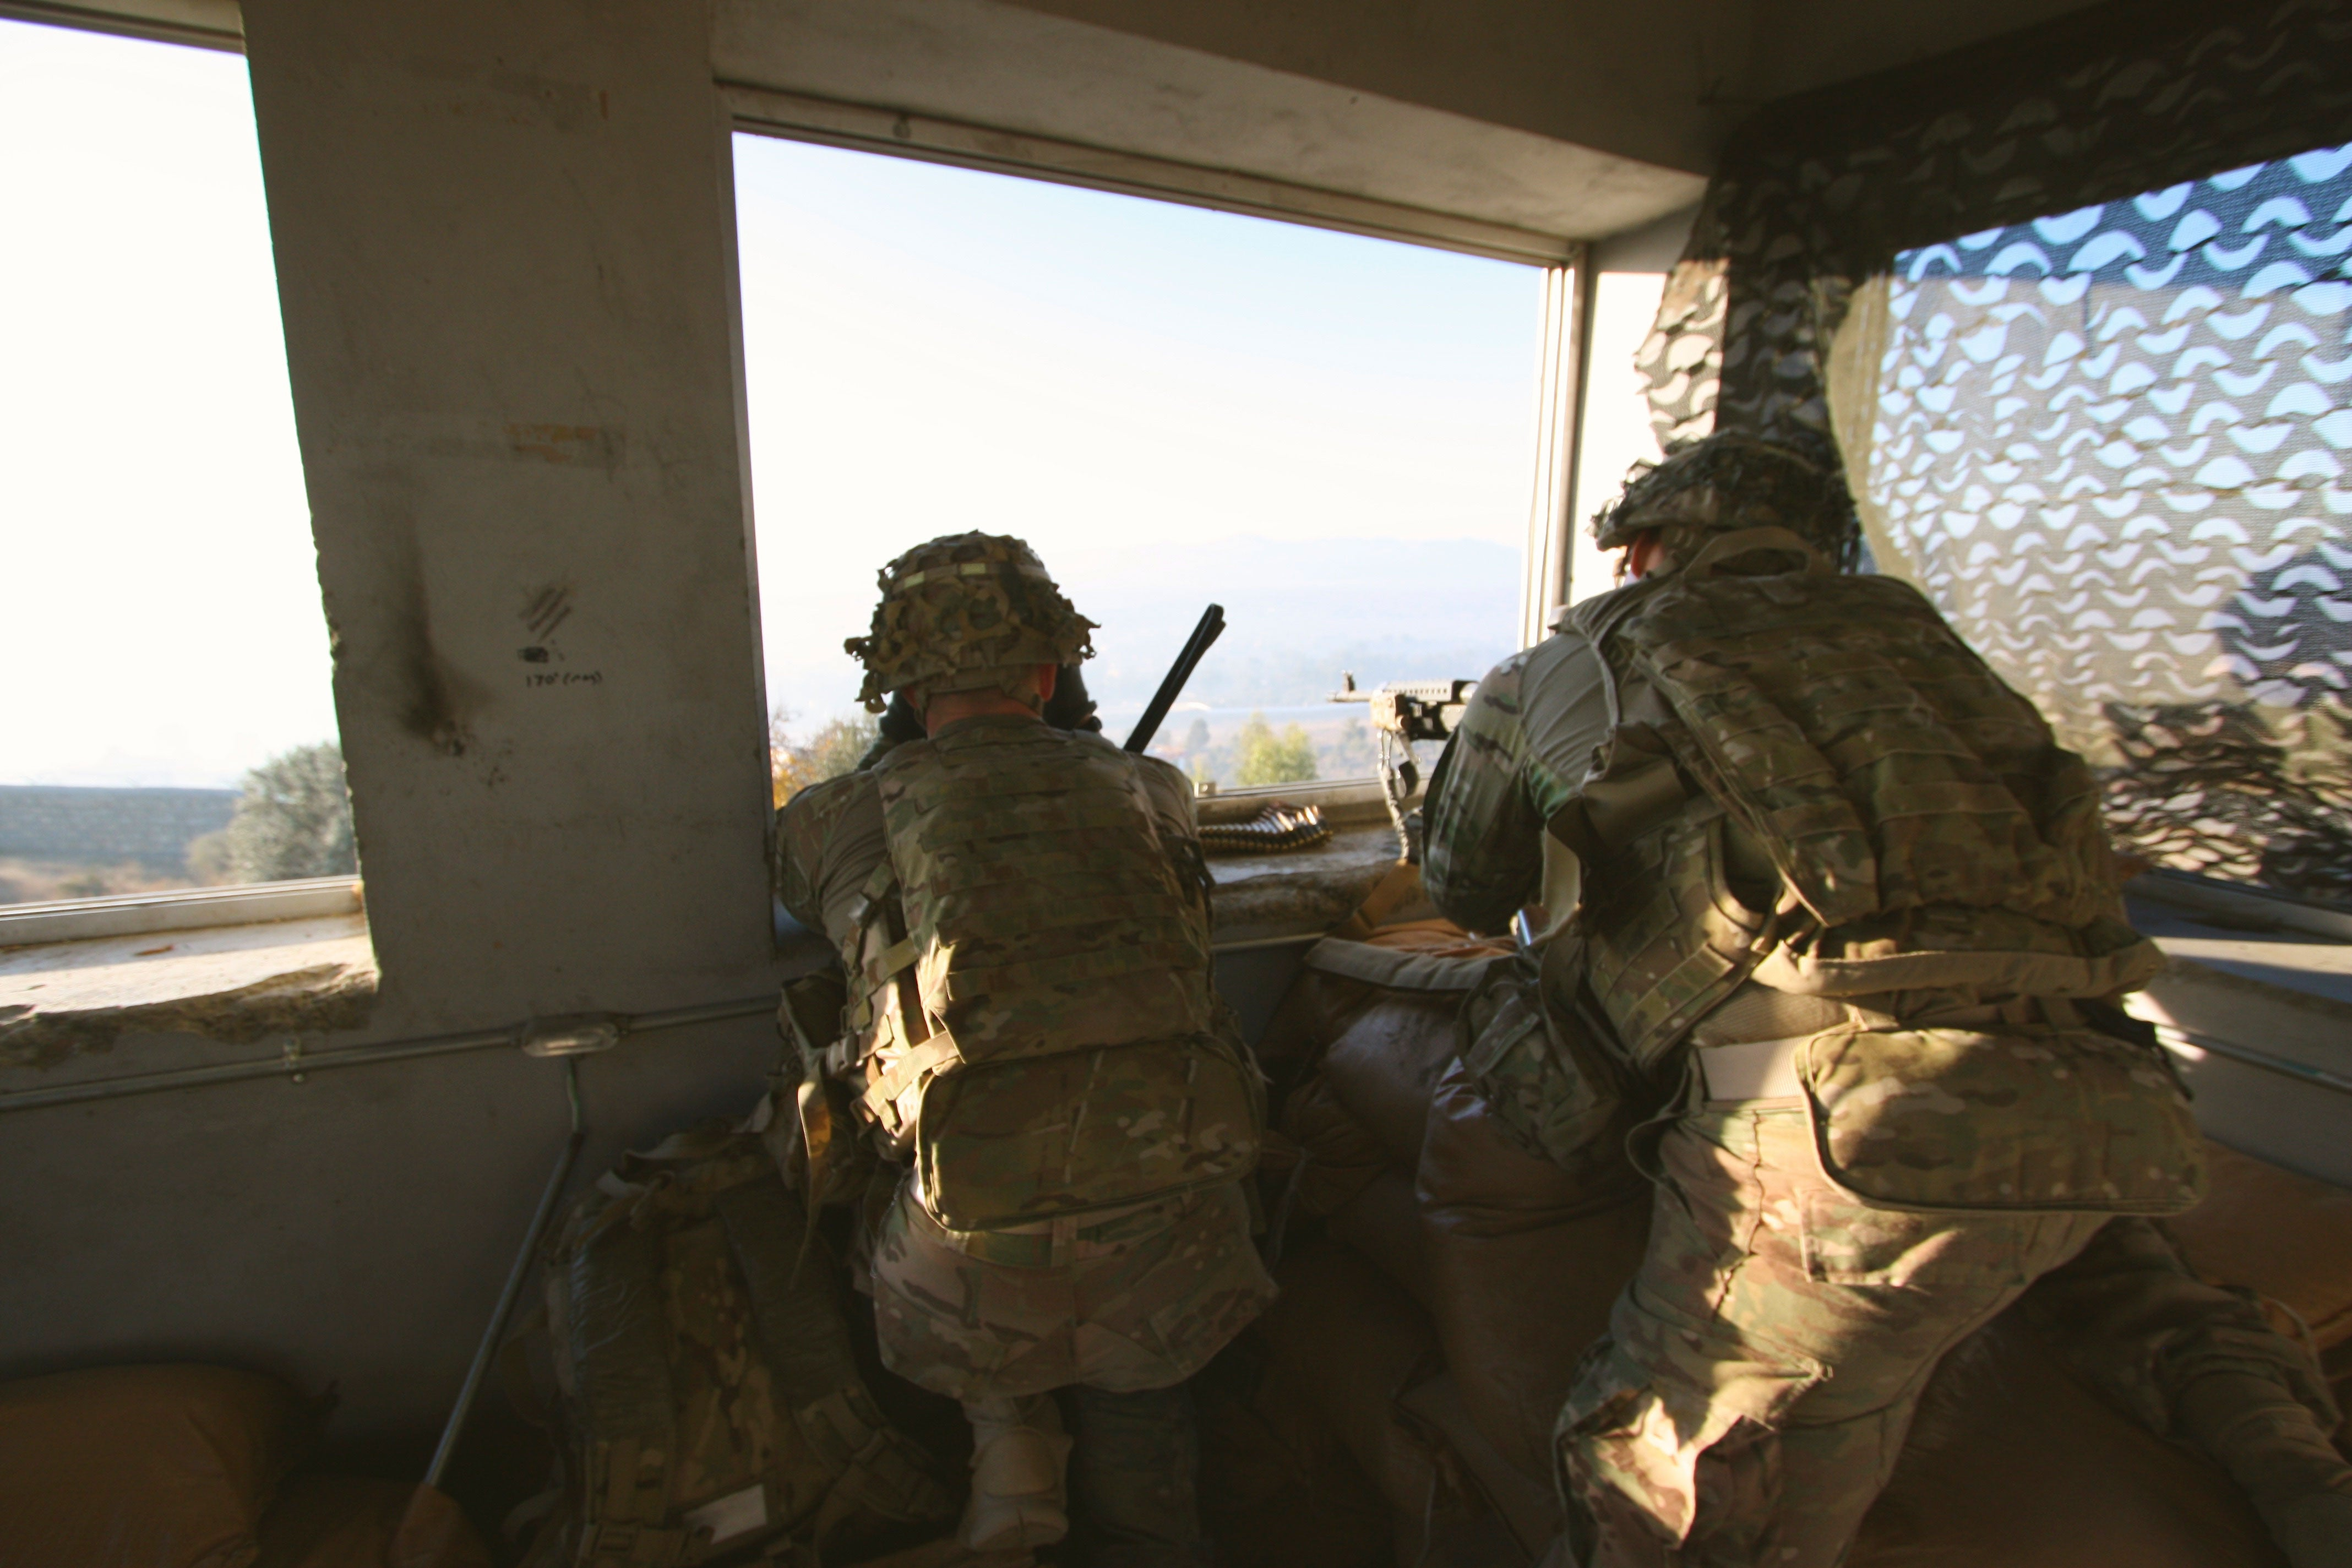 Fifteen years after 9/11, the U.S. military is still conducting operations in Afghanistan and Iraq.